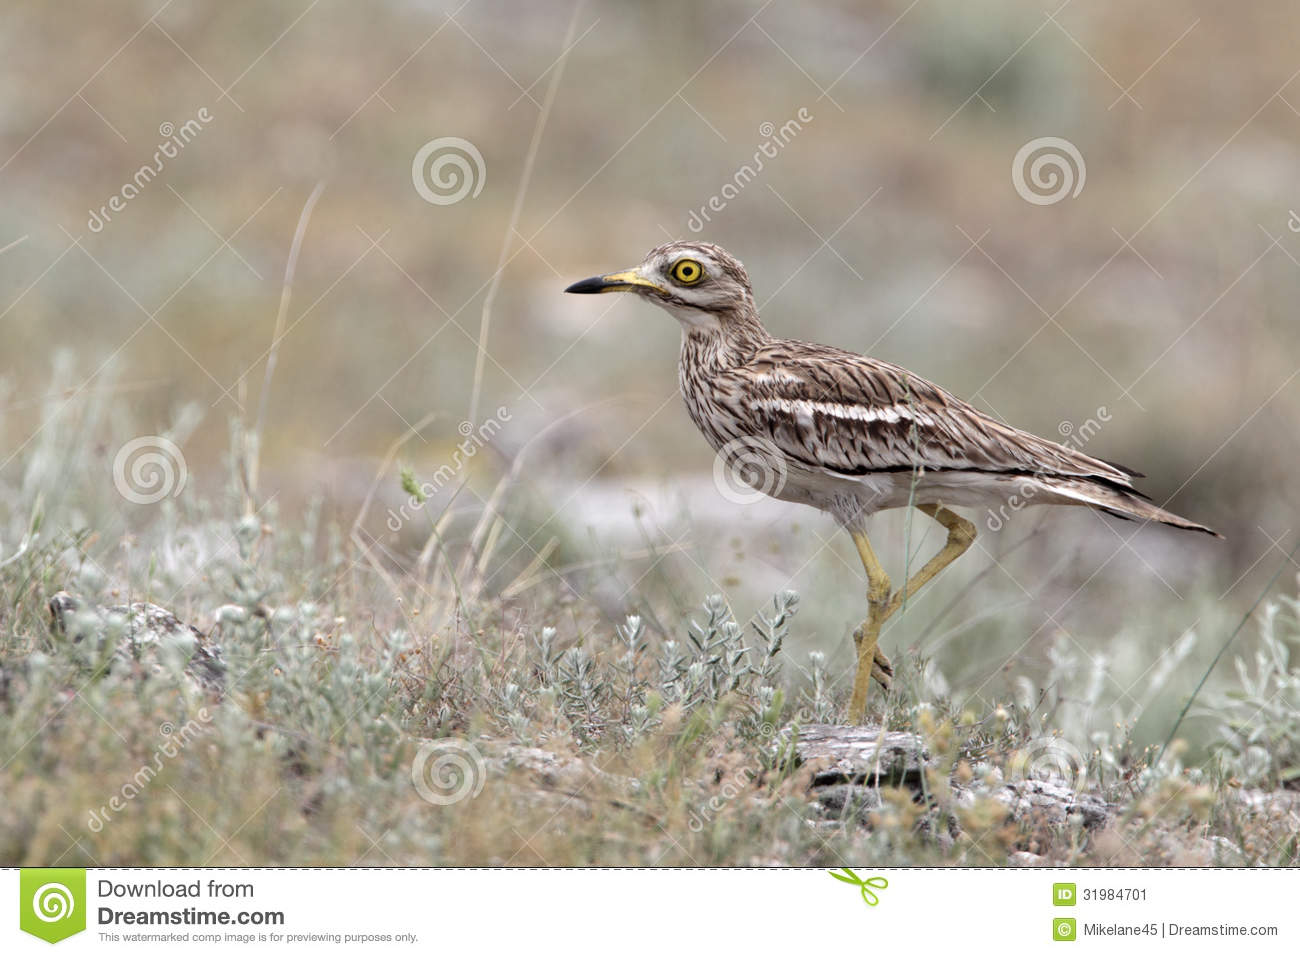 single men in curlew In curlew, wa, the median worker income is $43,611 this is higher than the national average of $29,701 the curlew, wa unemployment rate was 150%, as of the last census.